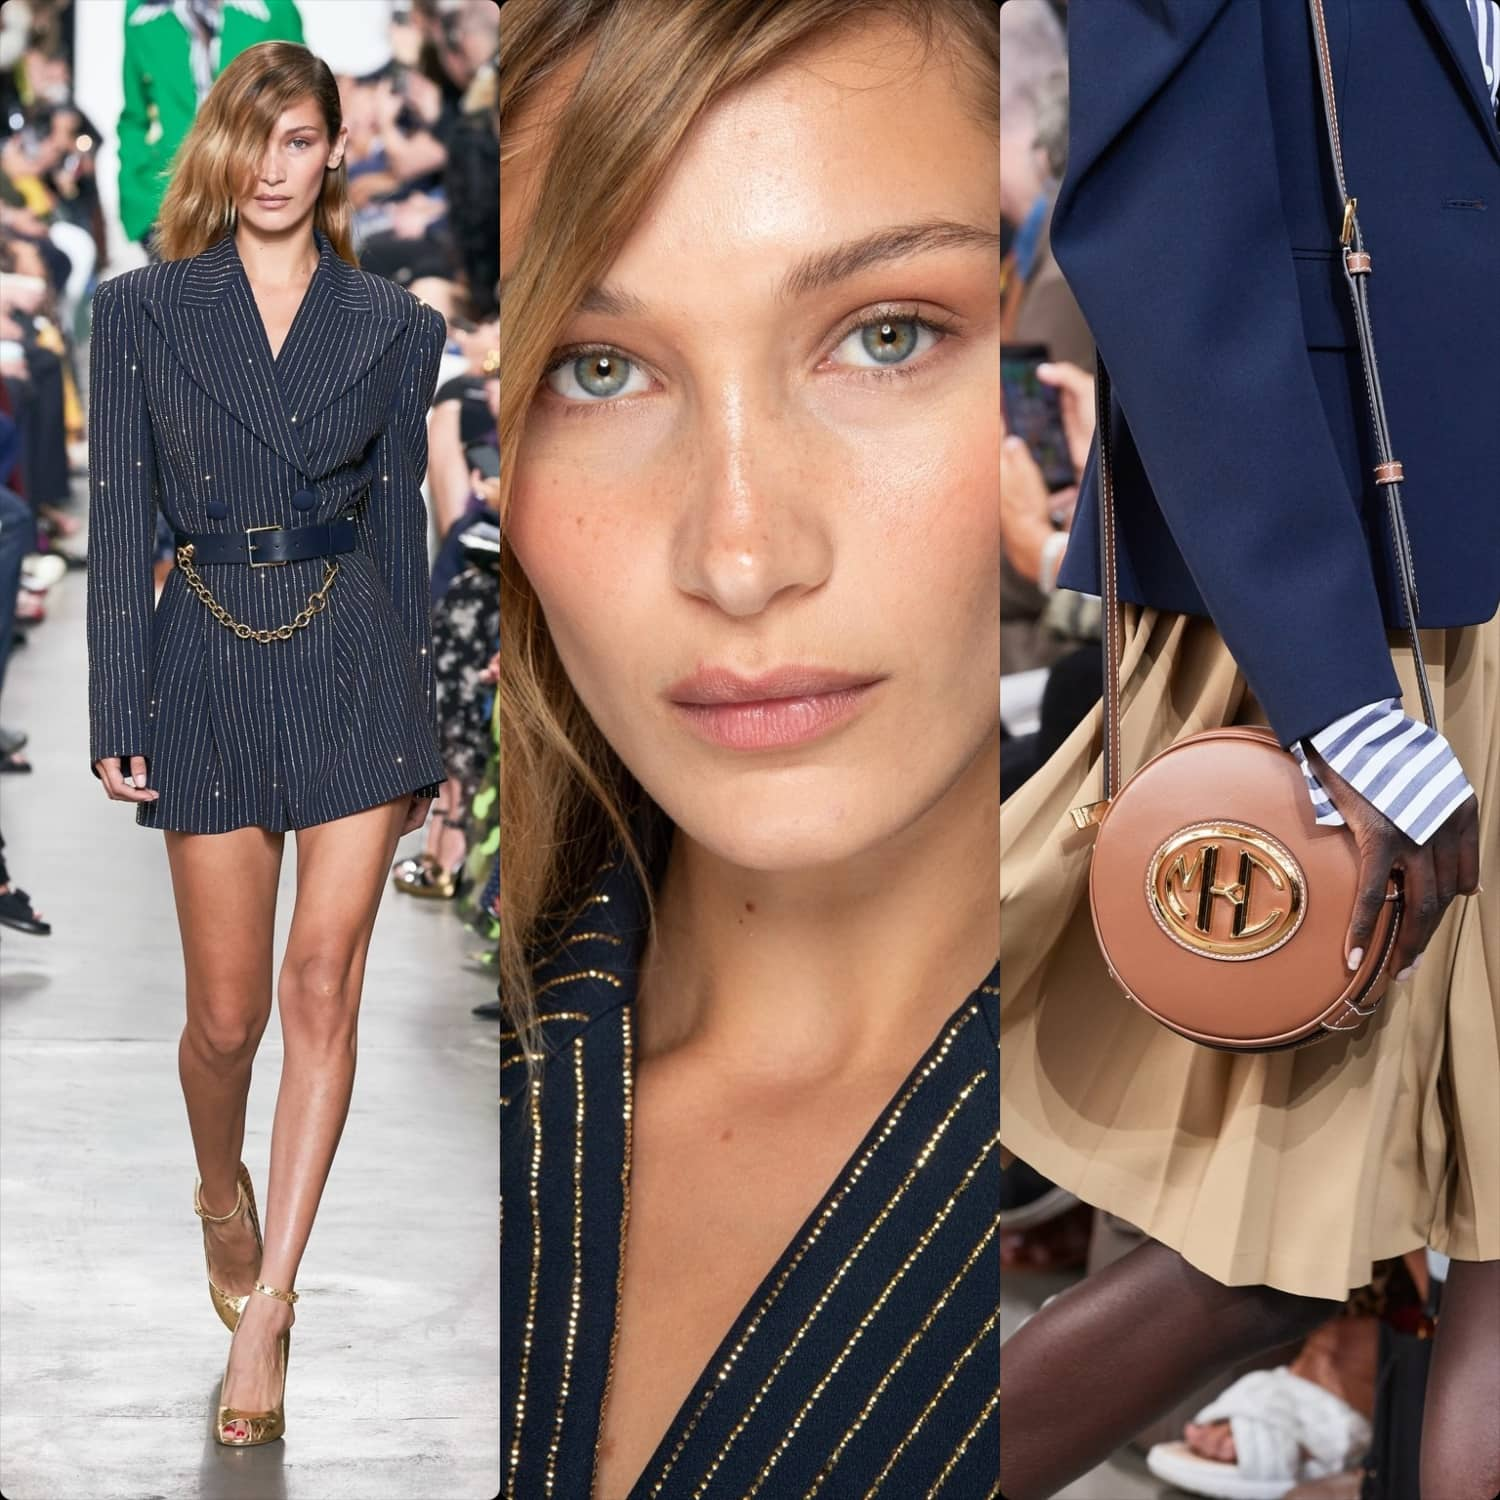 Michael Kors Spring Summer 2020 New York. Bella Hadid. RUNWAY MAGAZINE ® Collections. Photo Runway: Alessandro Lucioni / Gorunway.com, Photo Close Up: Alessandro Viero / Gorunway.com